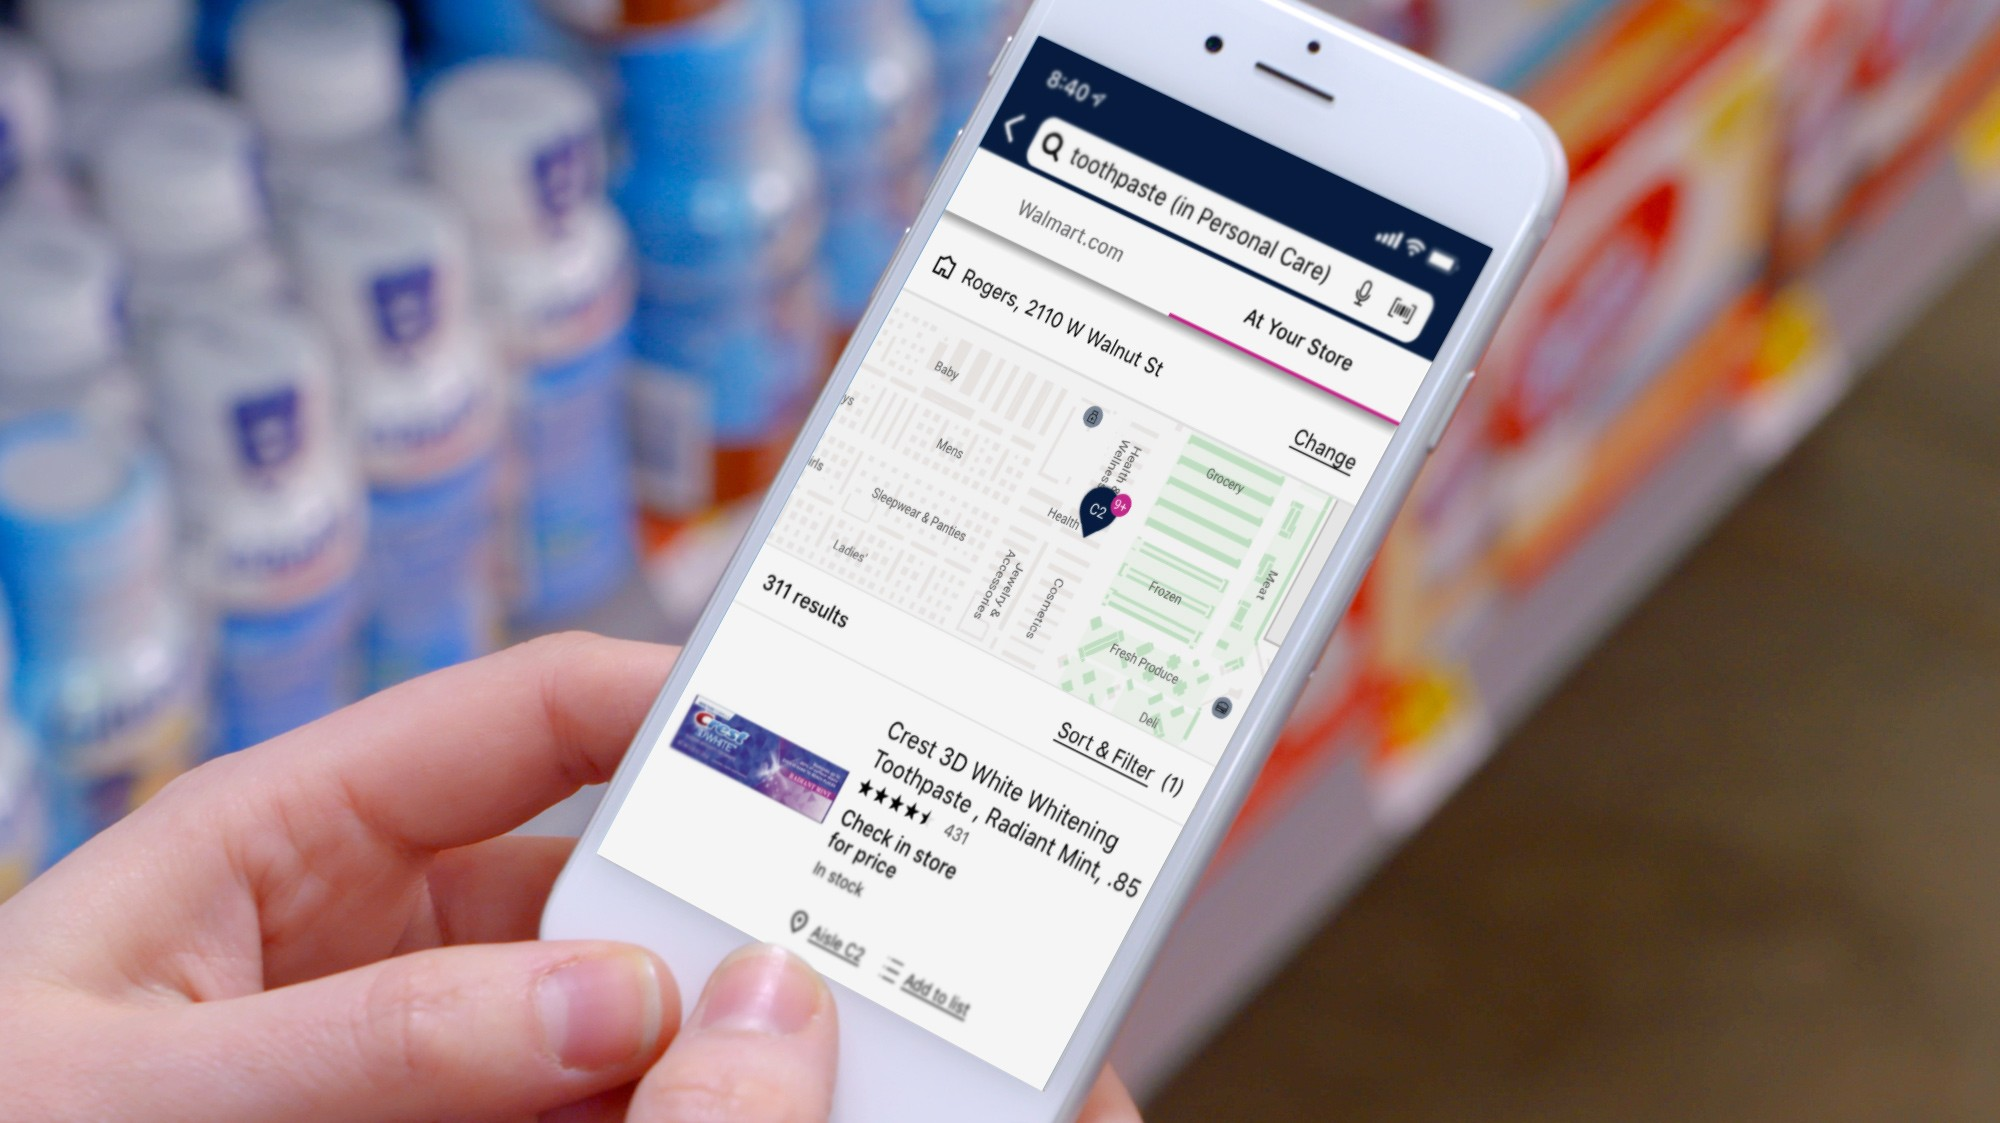 A customer uses the everyday maps feature in the Walmart app to find toothpaste